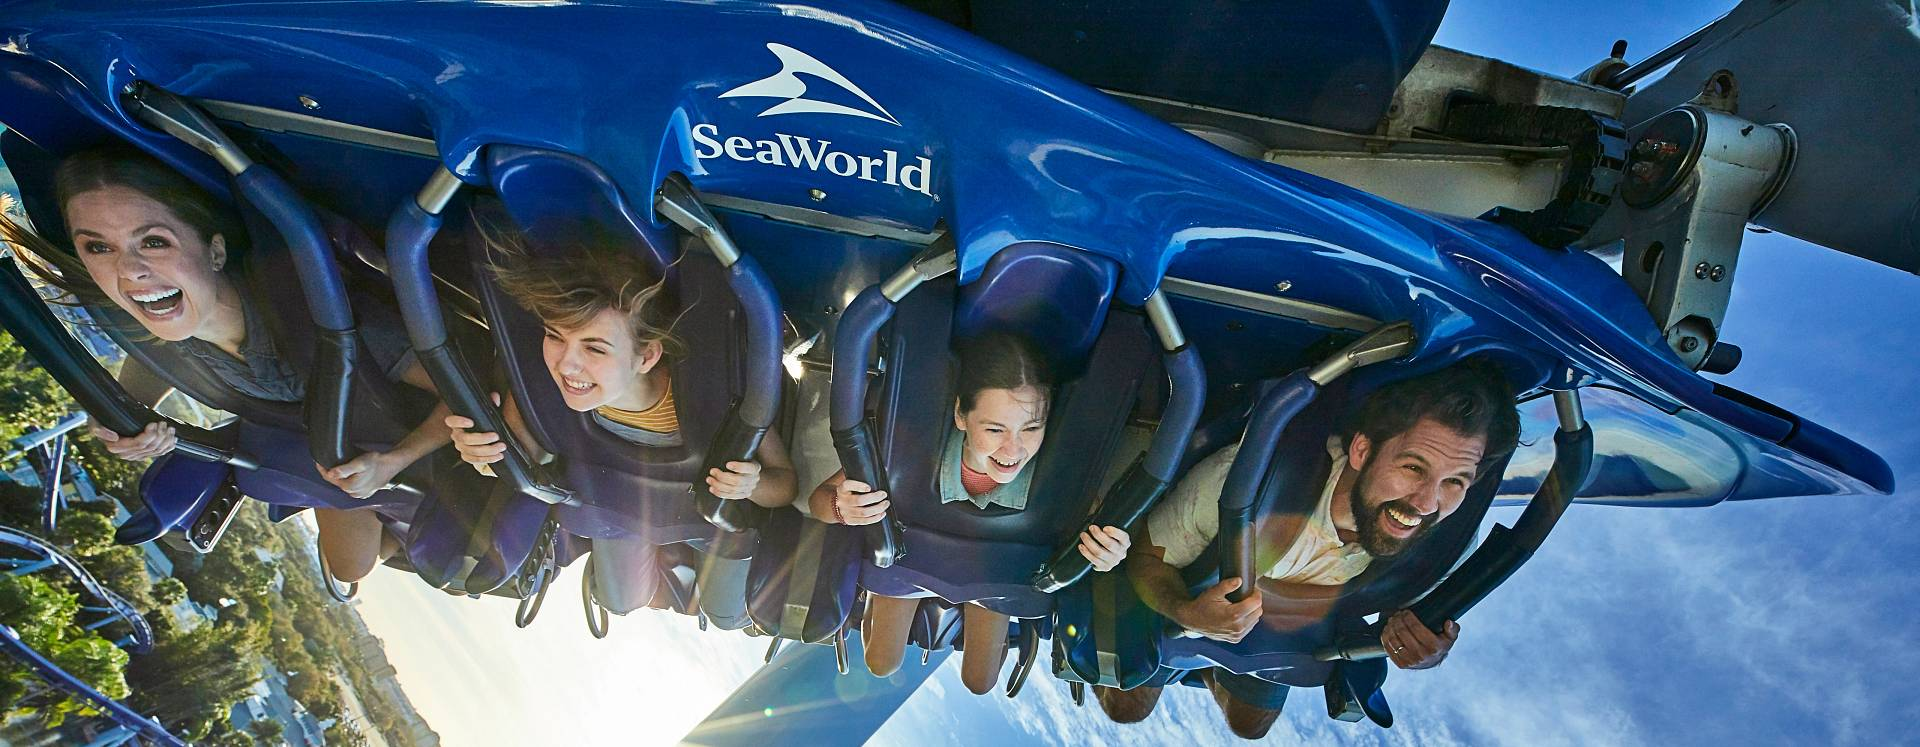 People screaming and having fun while riding on the Manta roller coaster, in SeaWorld Orlando